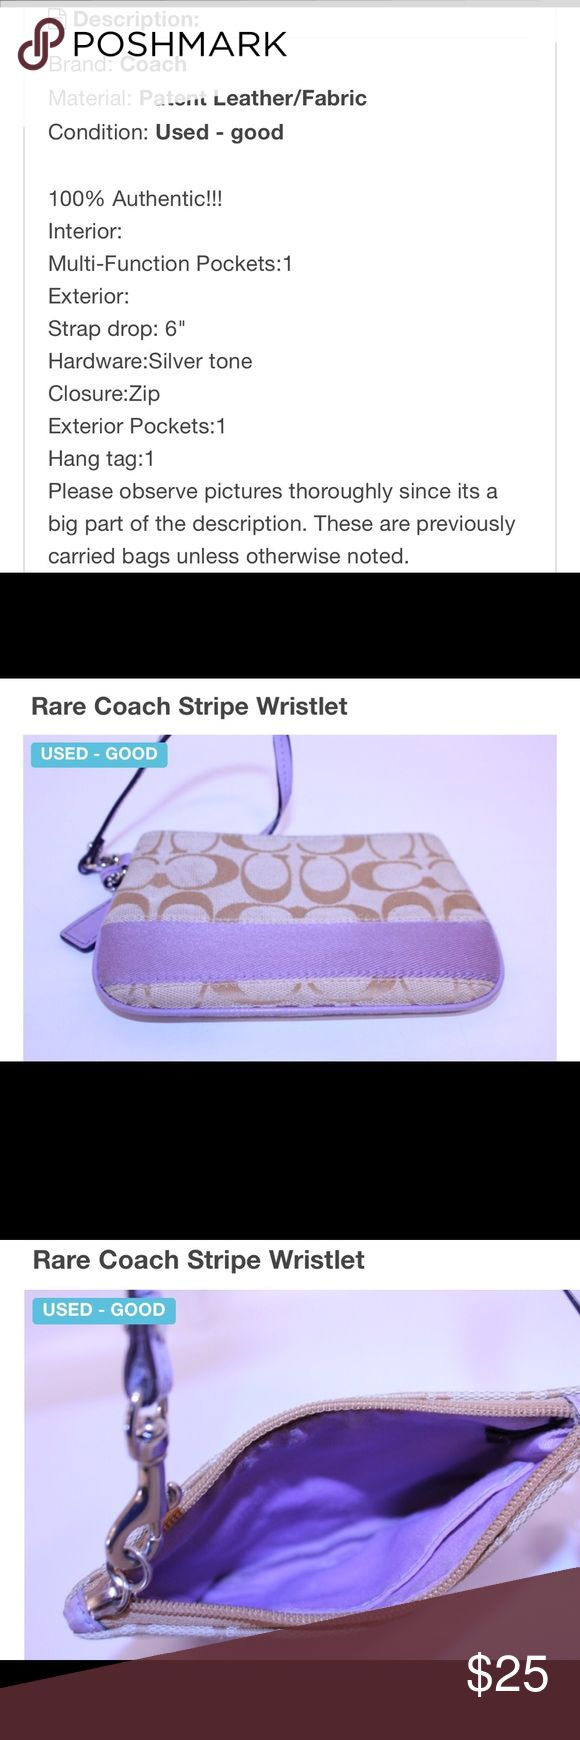 """Rare Coach Stripe Wristlet Description: Brand: Coach Material: Patent Leather/Fabric Condition: Used - good  100% Authentic!!!  Interior:  Multi-Function Pockets:1  Exterior:  Strap drop: 6""""  Hardware:Silver tone  Closure:Zip  Exterior Pockets:1  Hang tag:1  Please observe pictures thoroughly since its a big part of the description. These are previously carried bags unless otherwise noted. Coach Bags Clutches & Wristlets"""